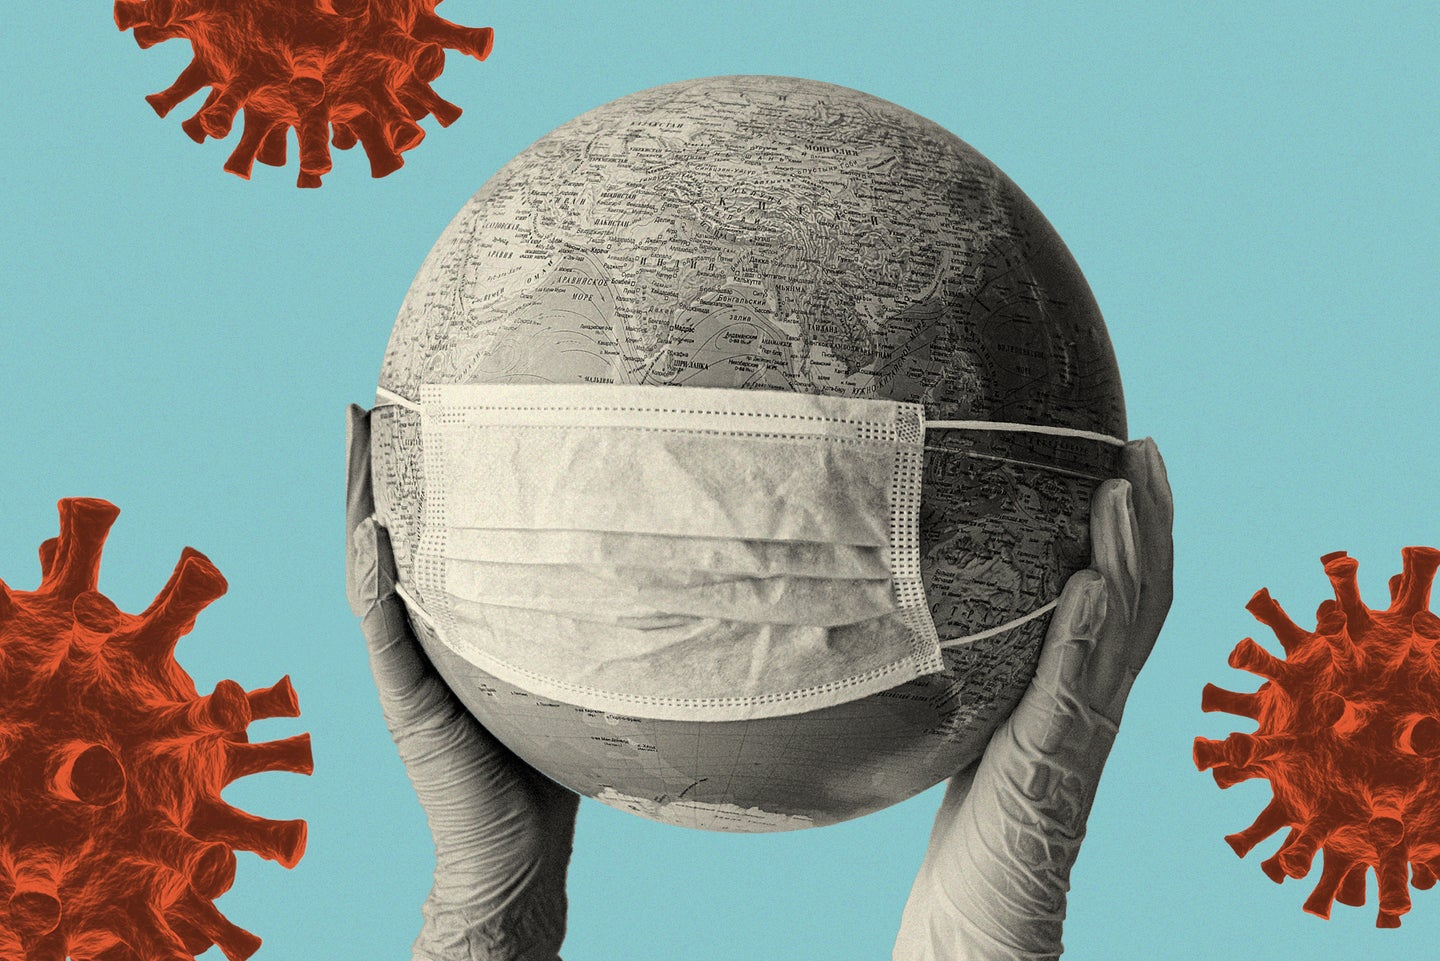 two gloved hands hold up a black and white globe with a medical mask stretched over it against a blue background with several red coronaviruses on it